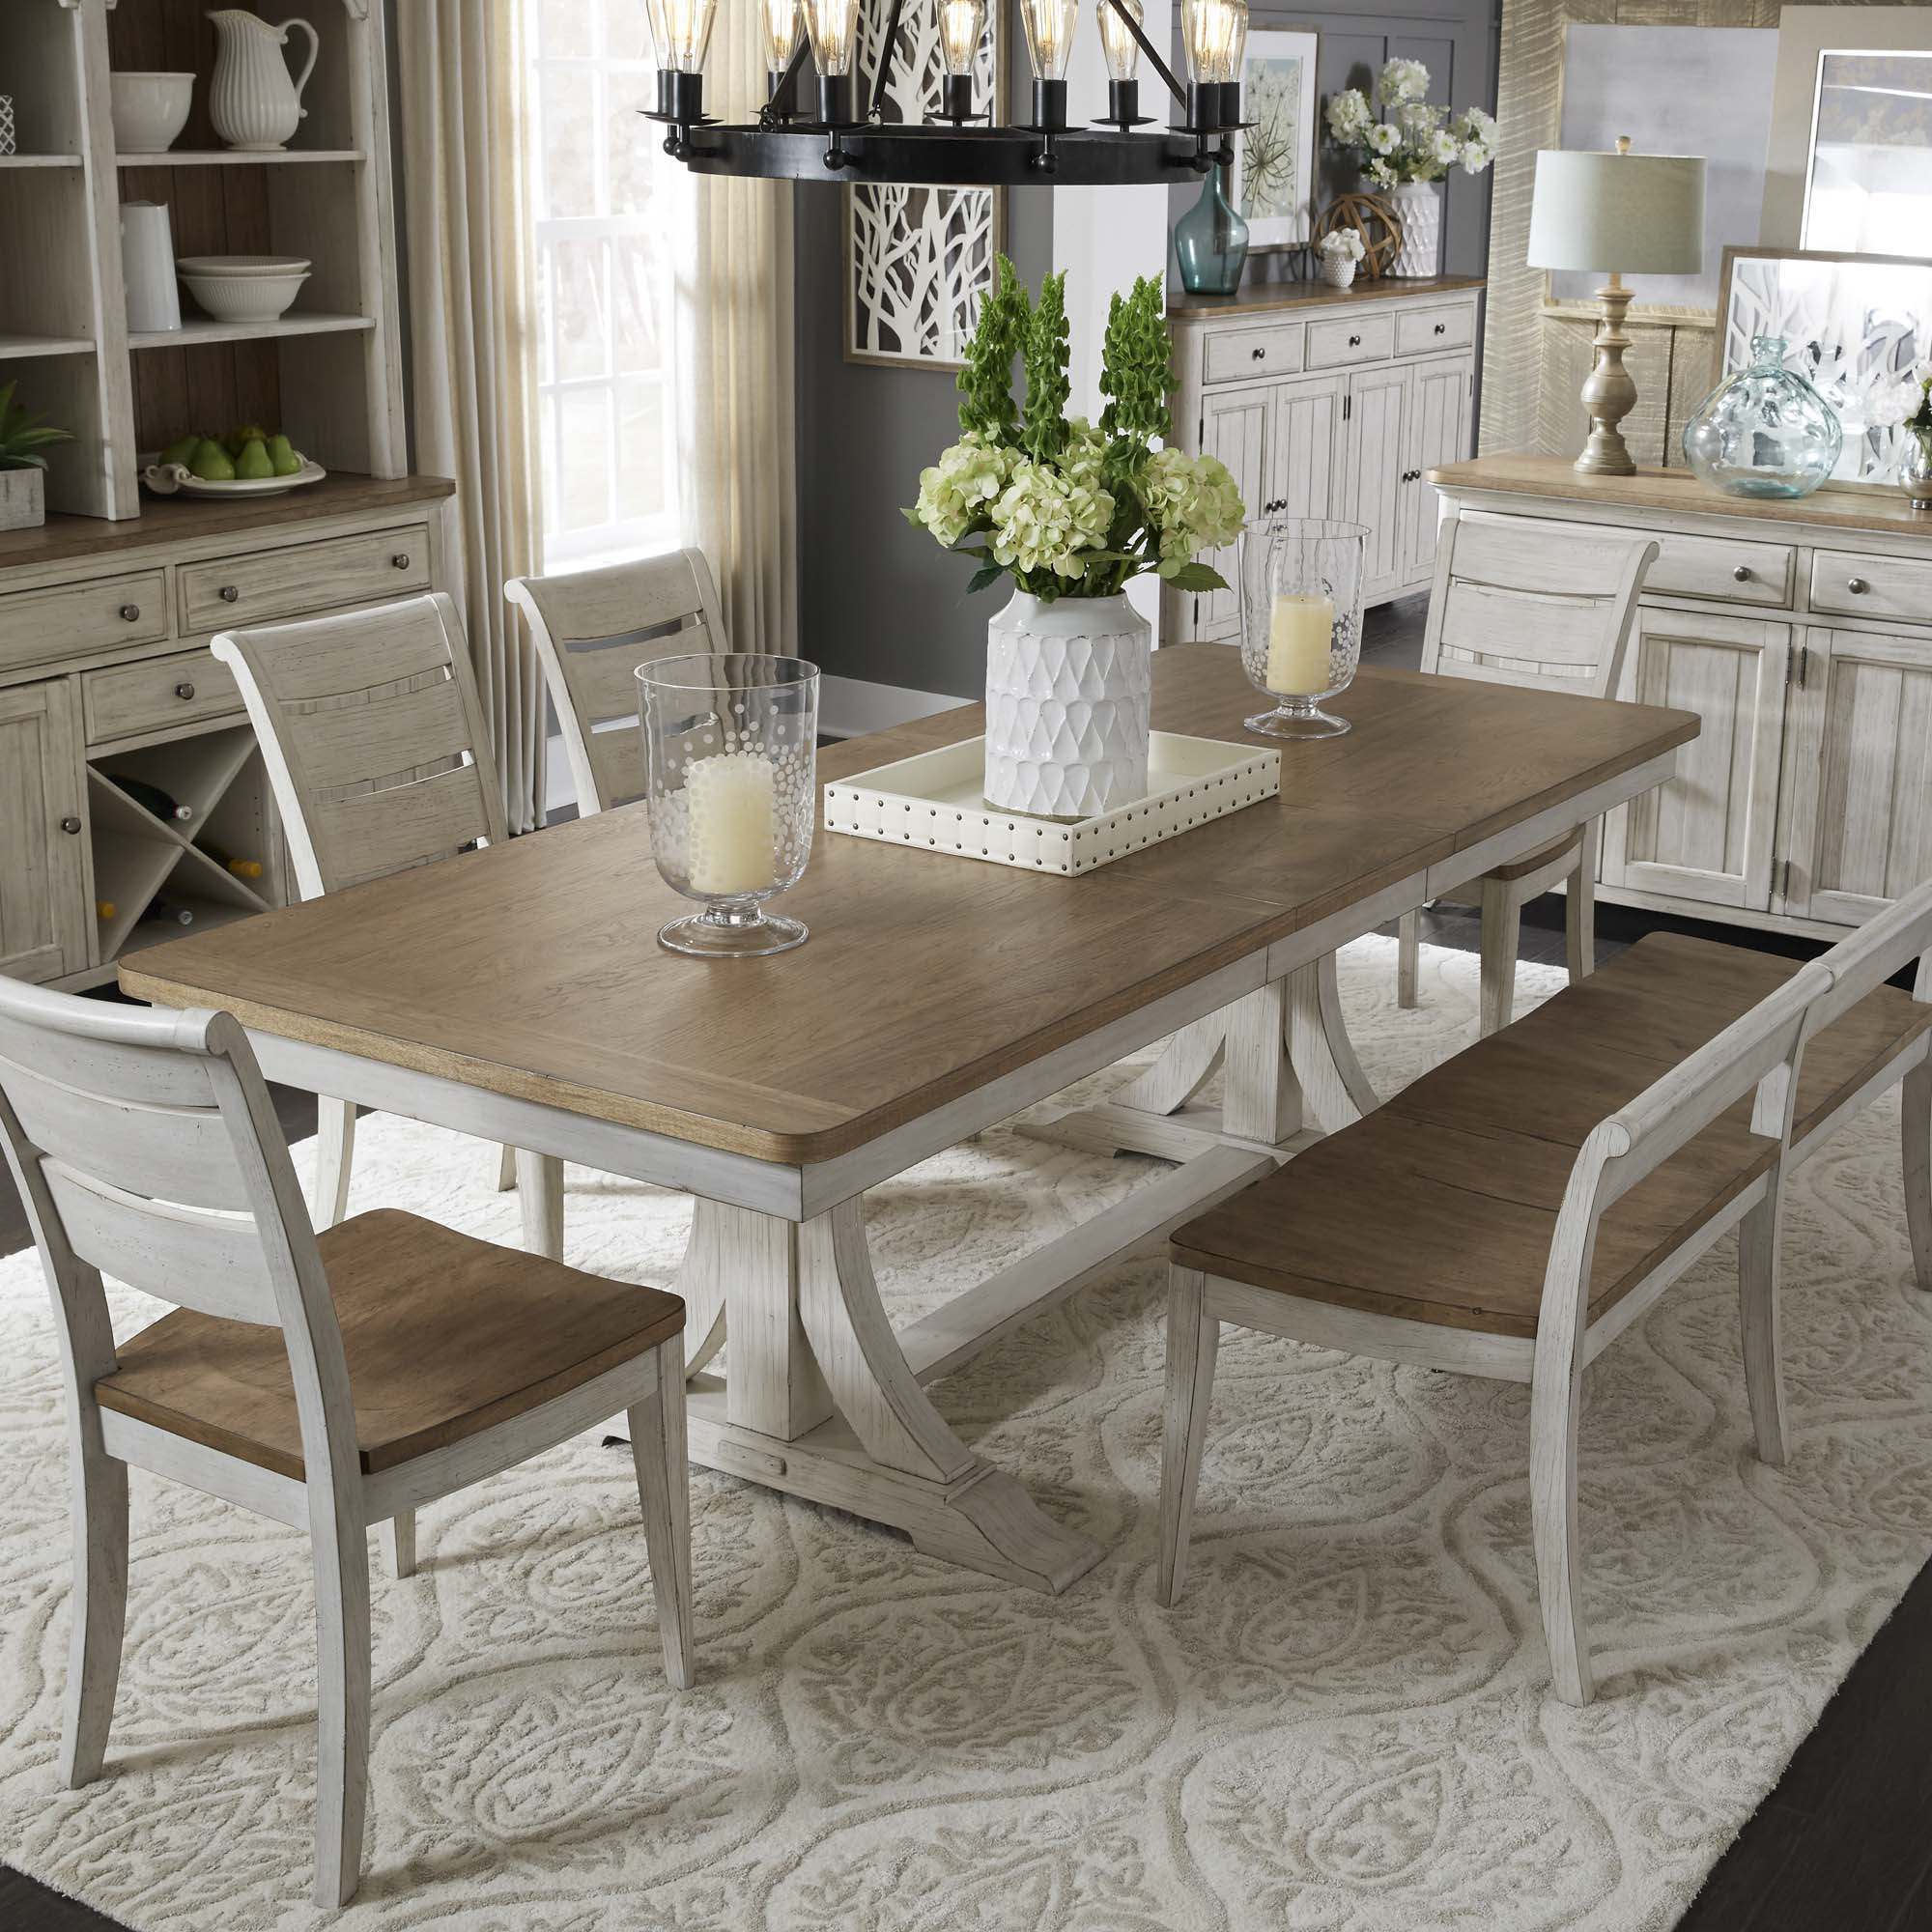 Preferred Walnut And Antique White Finish Contemporary Country Dining Tables Intended For Homepage Title (View 22 of 30)